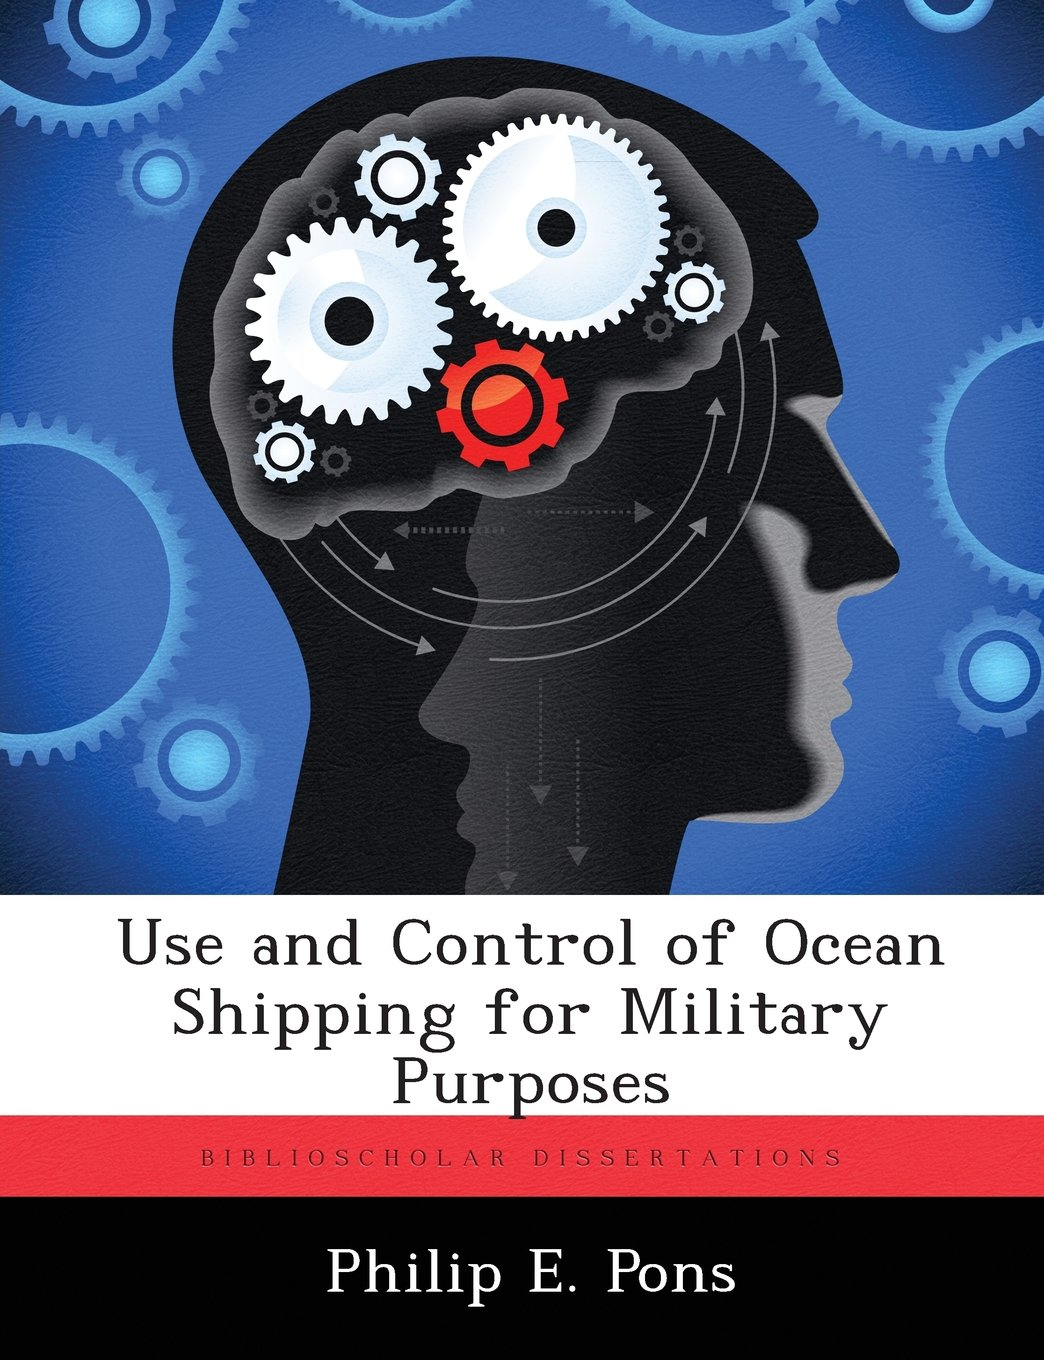 Download Use and Control of Ocean Shipping for Military Purposes ebook